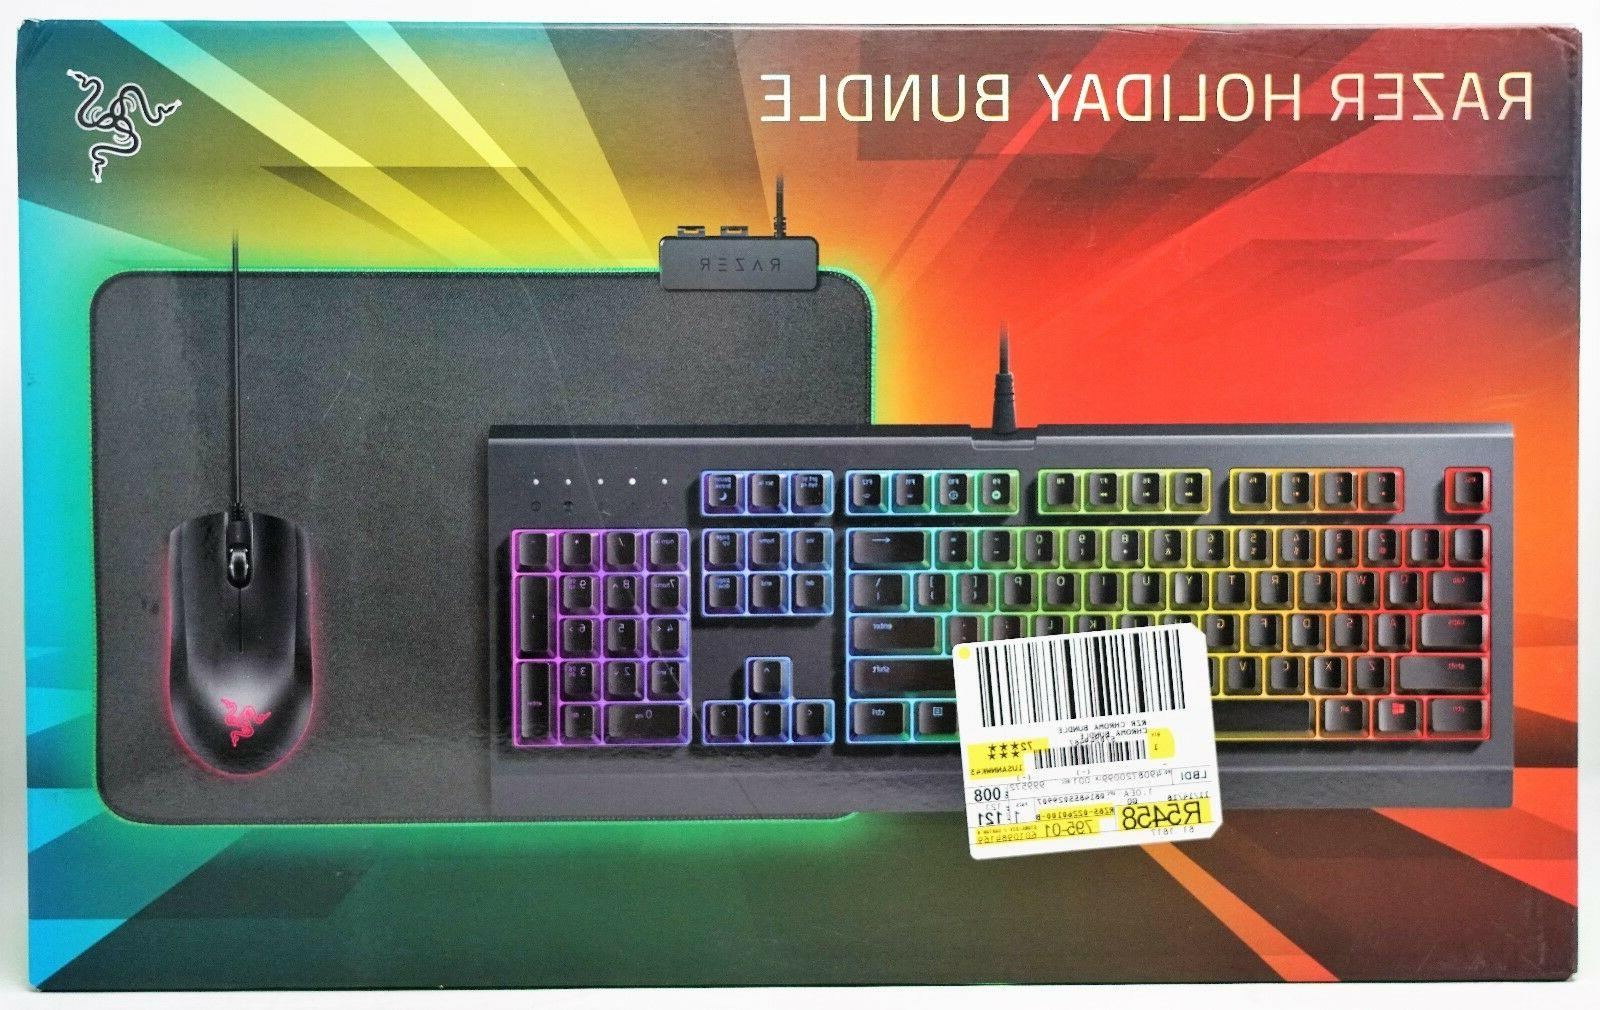 chroma bundle cynosa chroma gaming keyboard abyssus